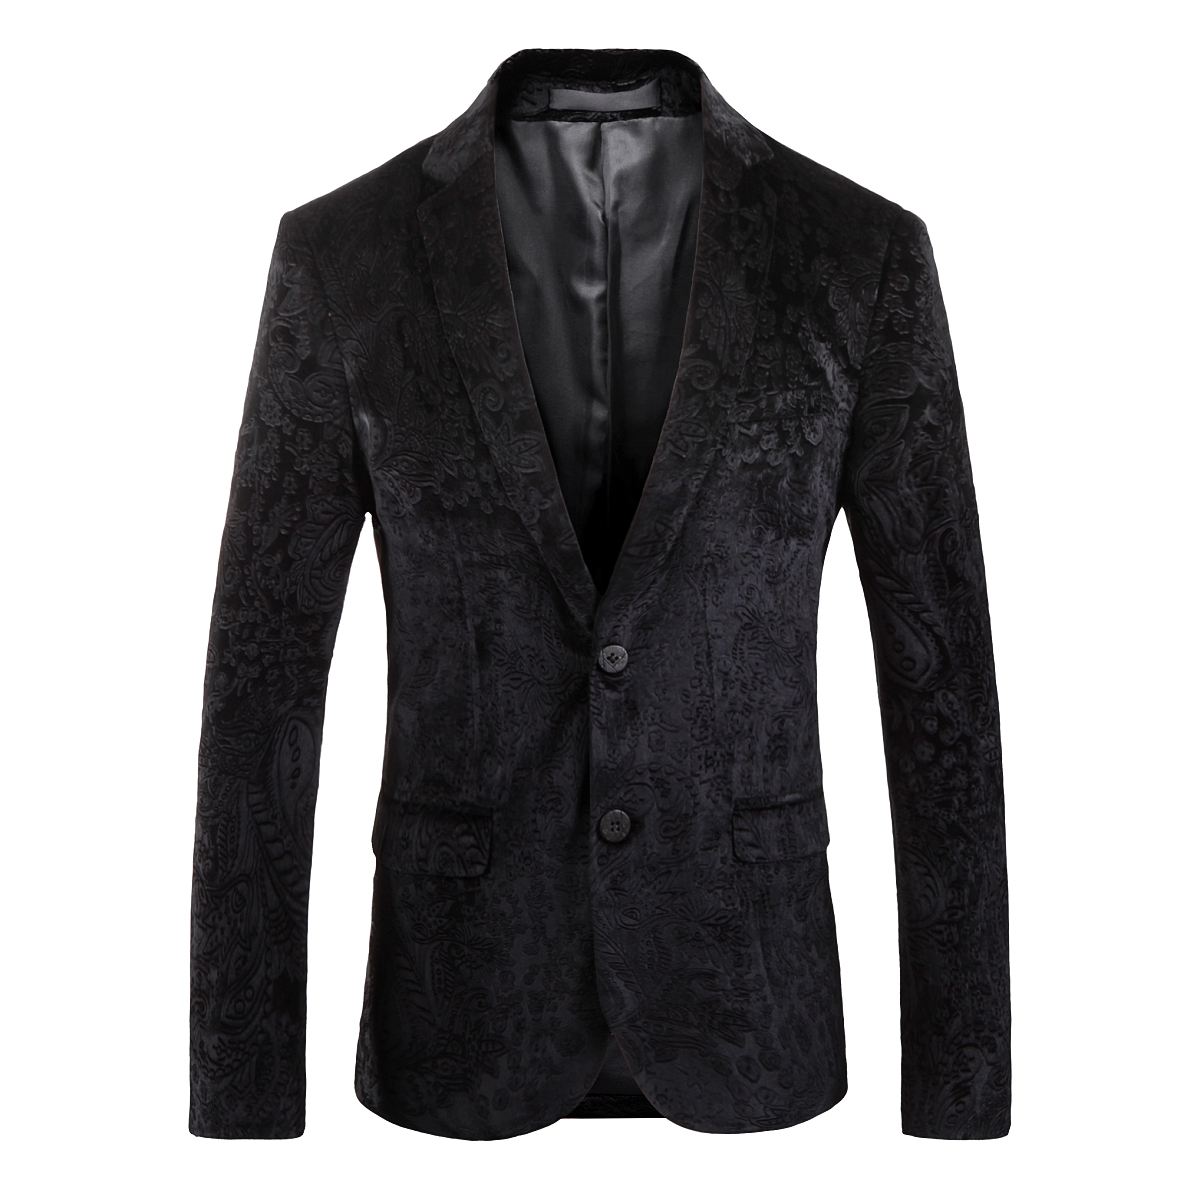 PAULKONTE 2019 New Men Pattern Suit Dress Jacket Black Business Family Dinner High Quality Self Cultivation Temperament Clothing